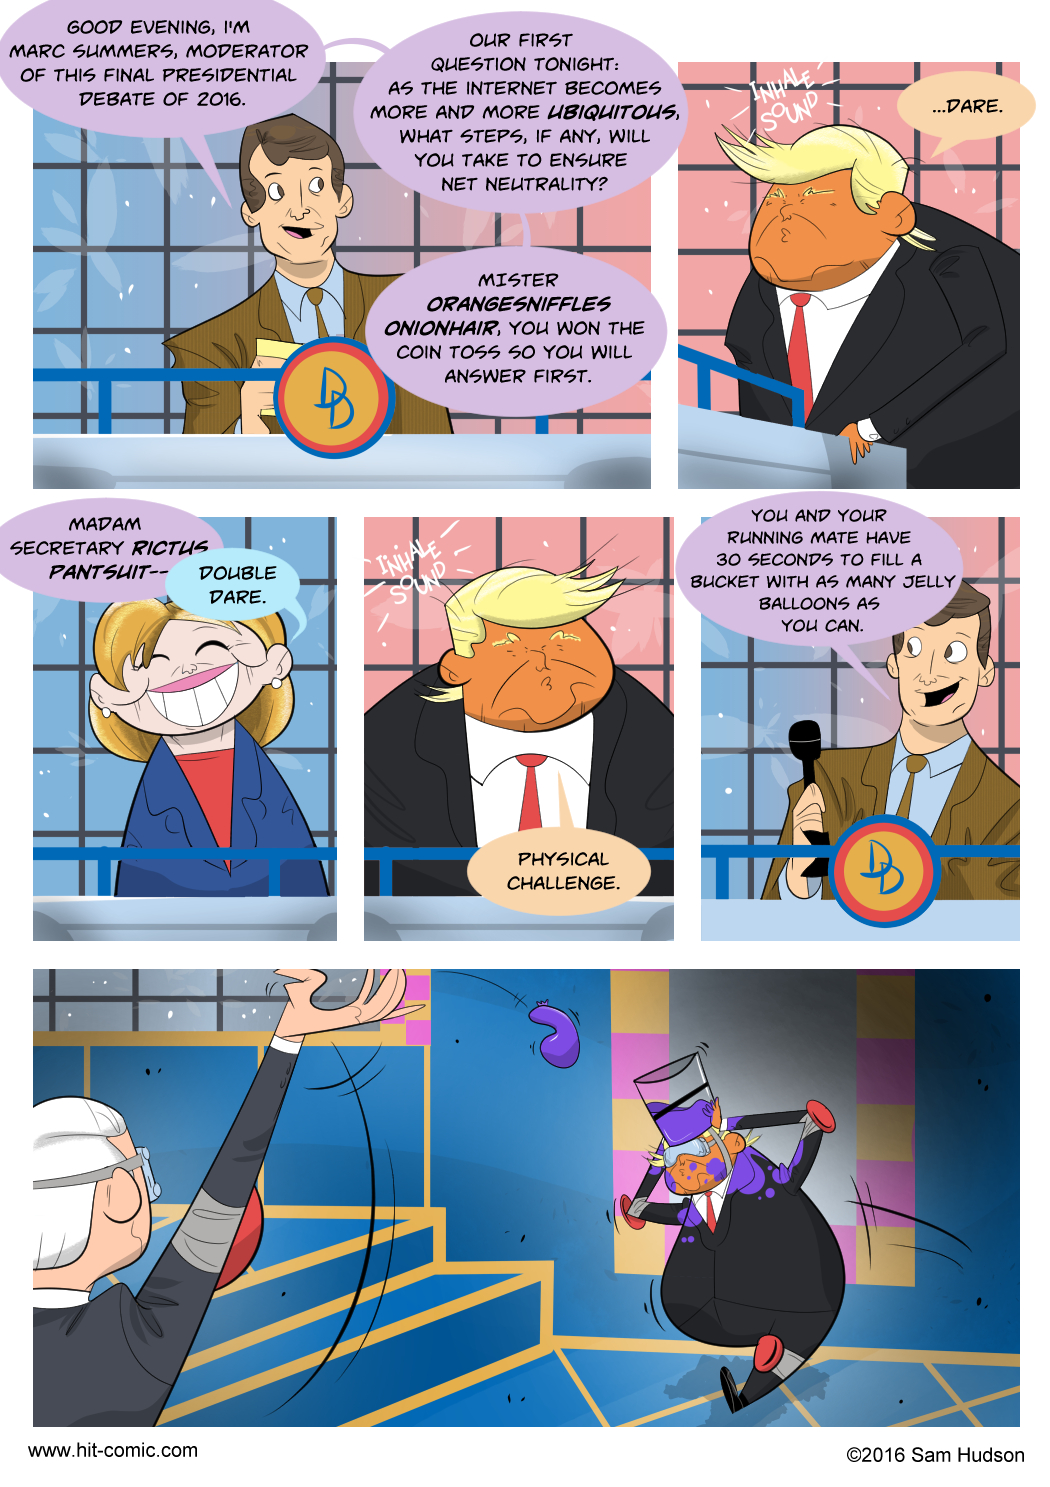 A Comic About What I Want To See At A Presidential Debate